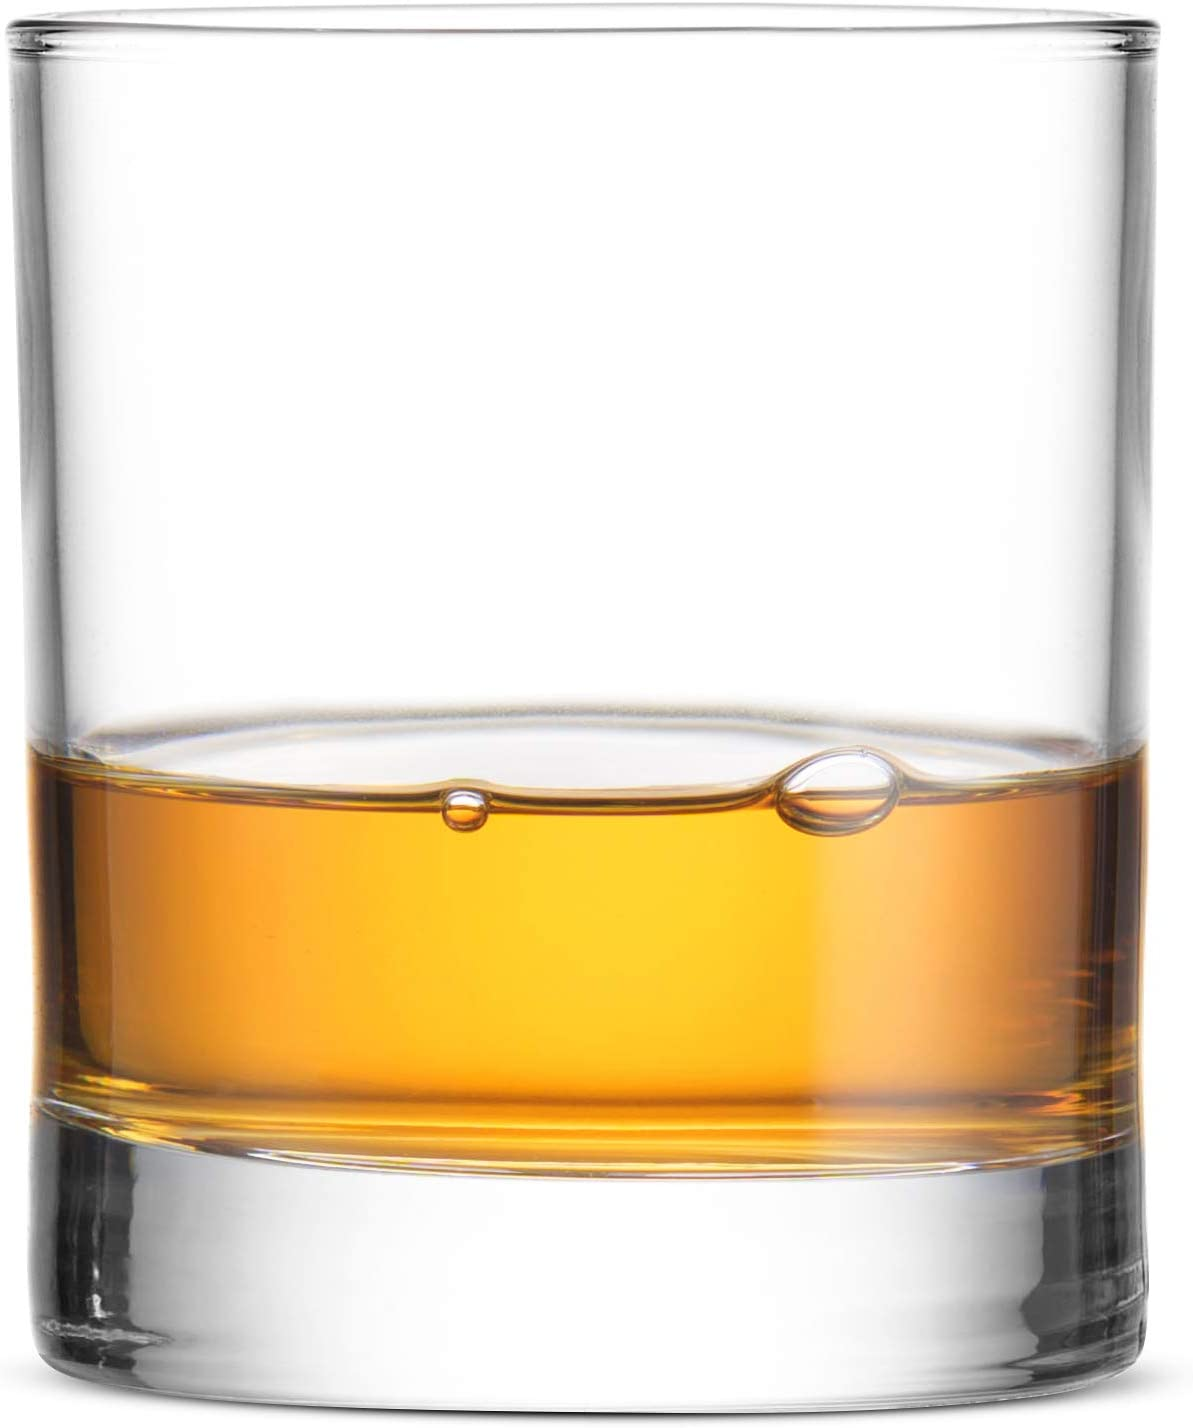 """Bormioli Rocco Small 2 ¾"""" x 3"""" Italian Weighted Bottom Old Fashioned Whiskey Glasses for Wine, Scotch, Cocktails, Juice, and Water - [6 Piece Set] 6 ½ Ounce"""